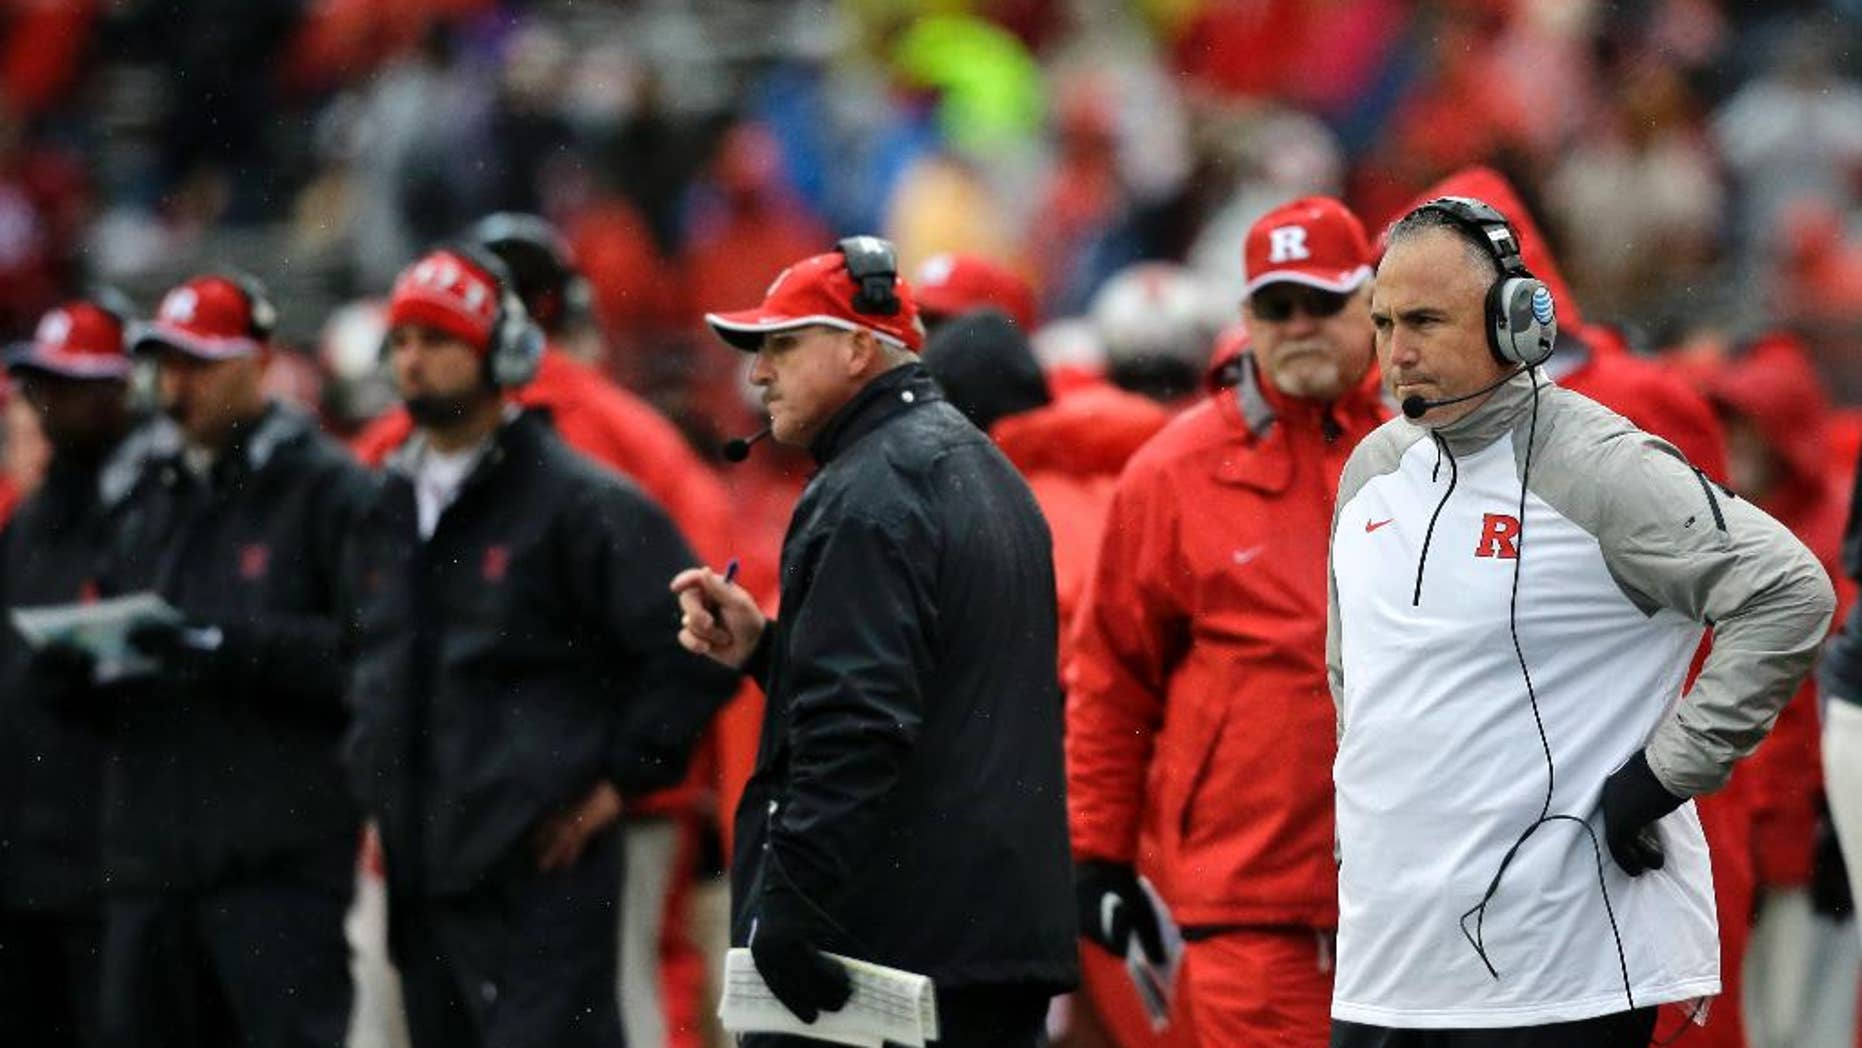 Rutgers head coach Kyle Flood, right, watches from the sidelines during the second half of an NCAA college football game against Wisconsin, Saturday, Nov. 1, 2014, in Piscataway, N.J. Wisconsin won 37-0. (AP Photo/Mel Evans)